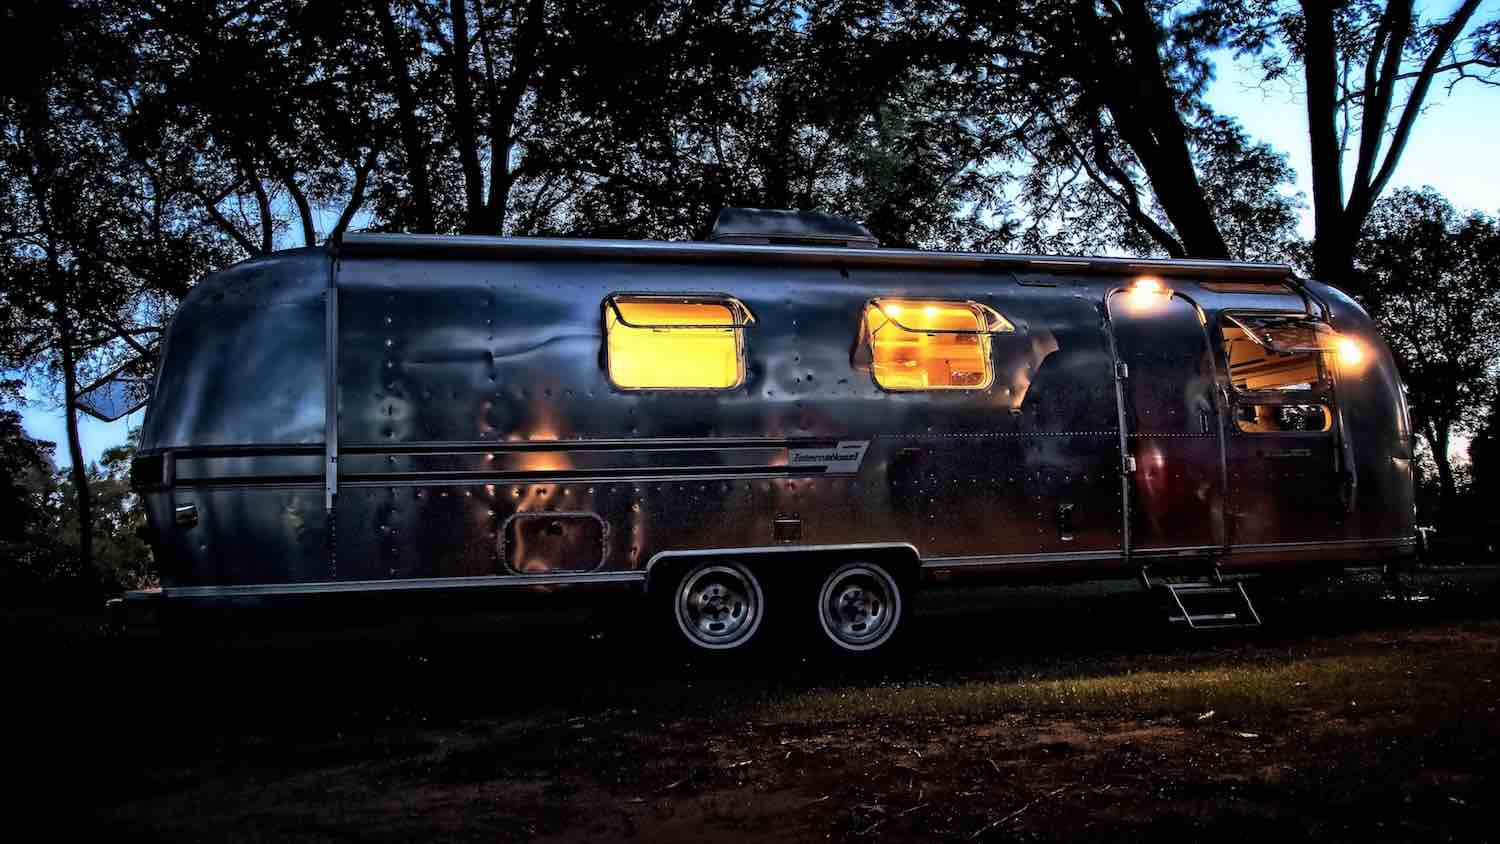 A beautiful glow from our Airstream Travel Trailer.